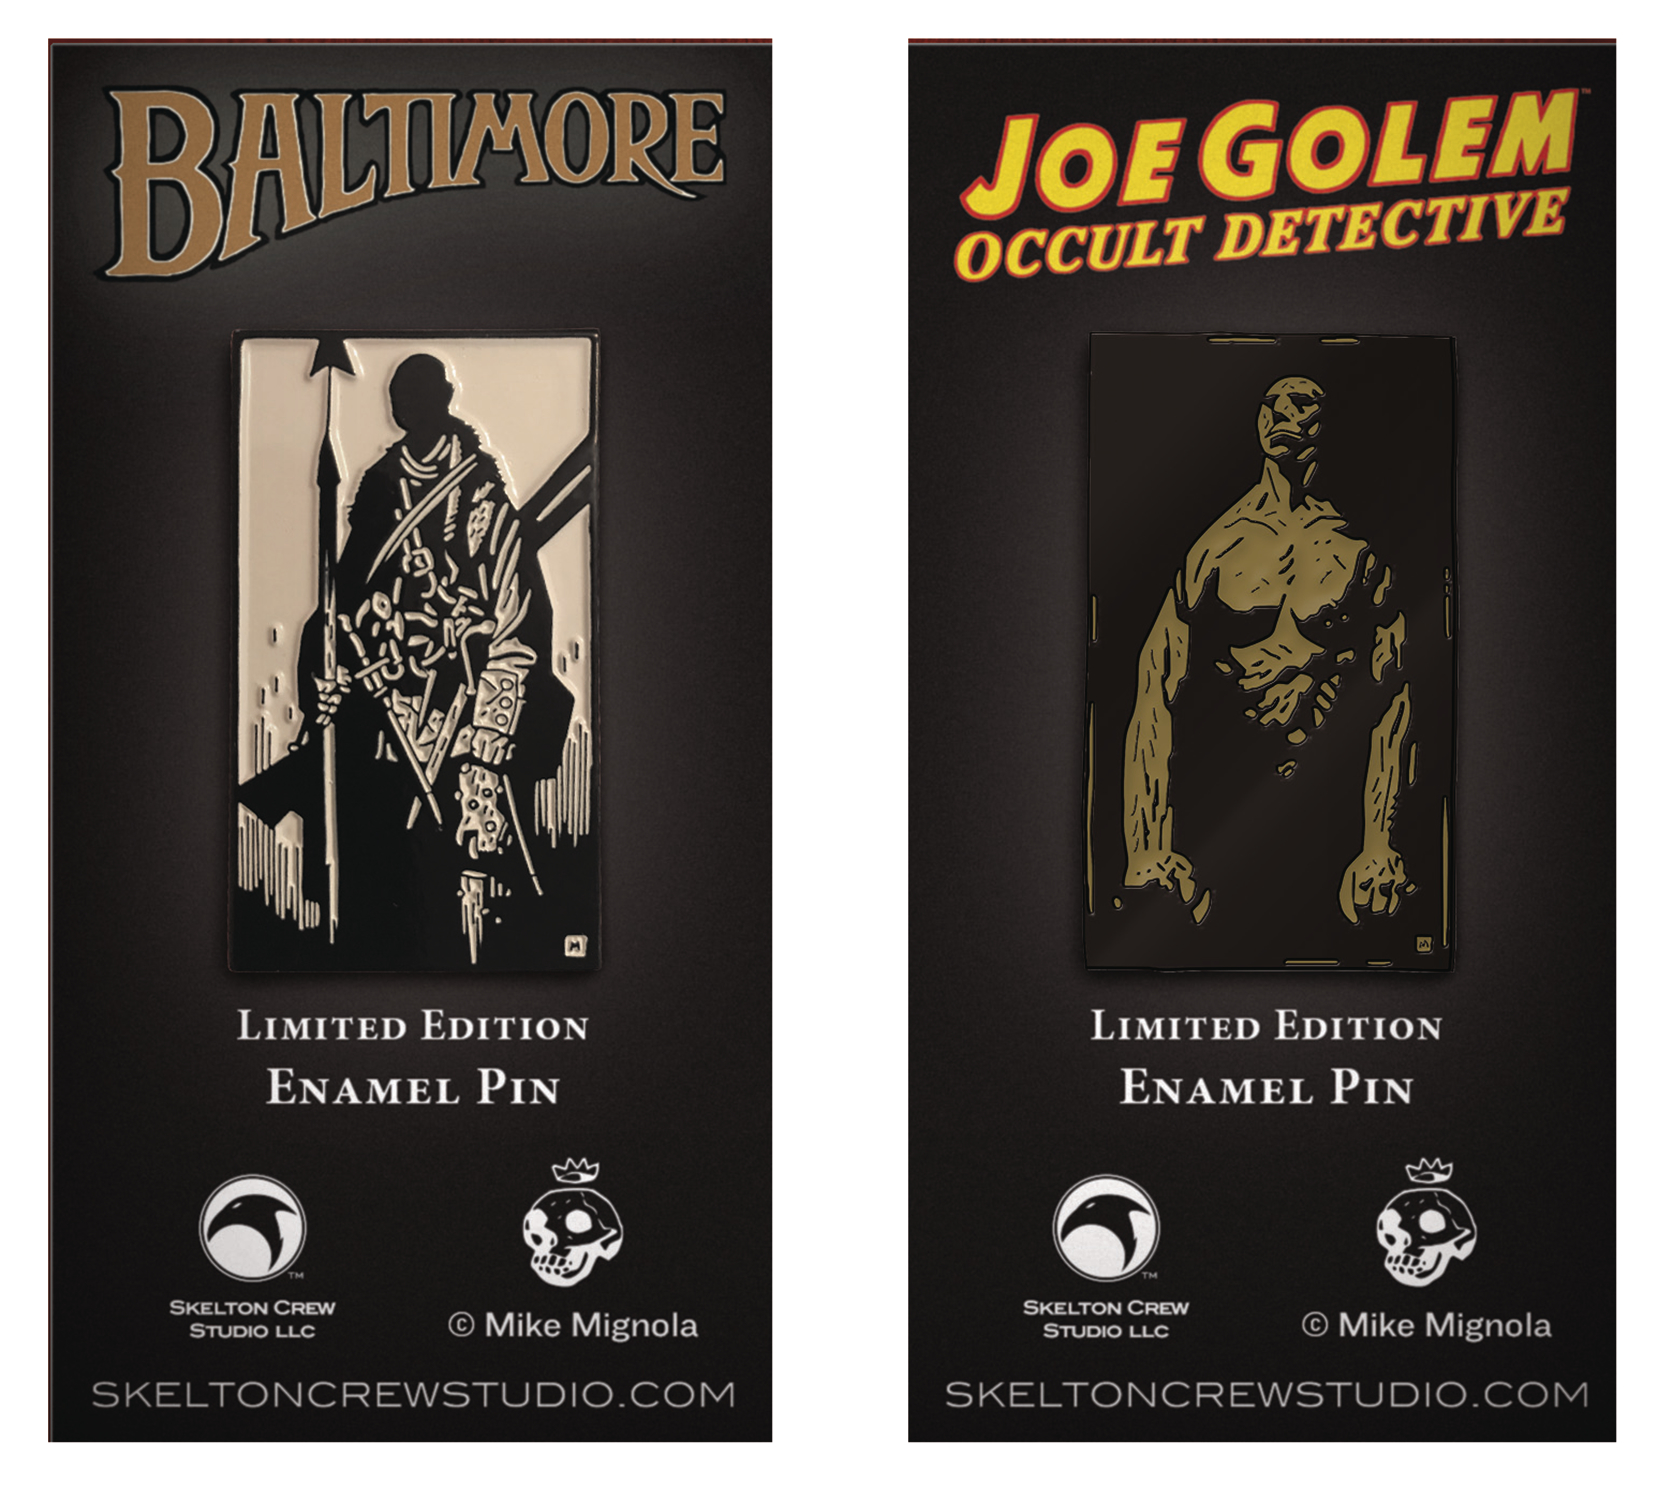 MIGNOLA JOE GOLEM & LORD BALTIMORE LTD ED ENAMEL PIN SET